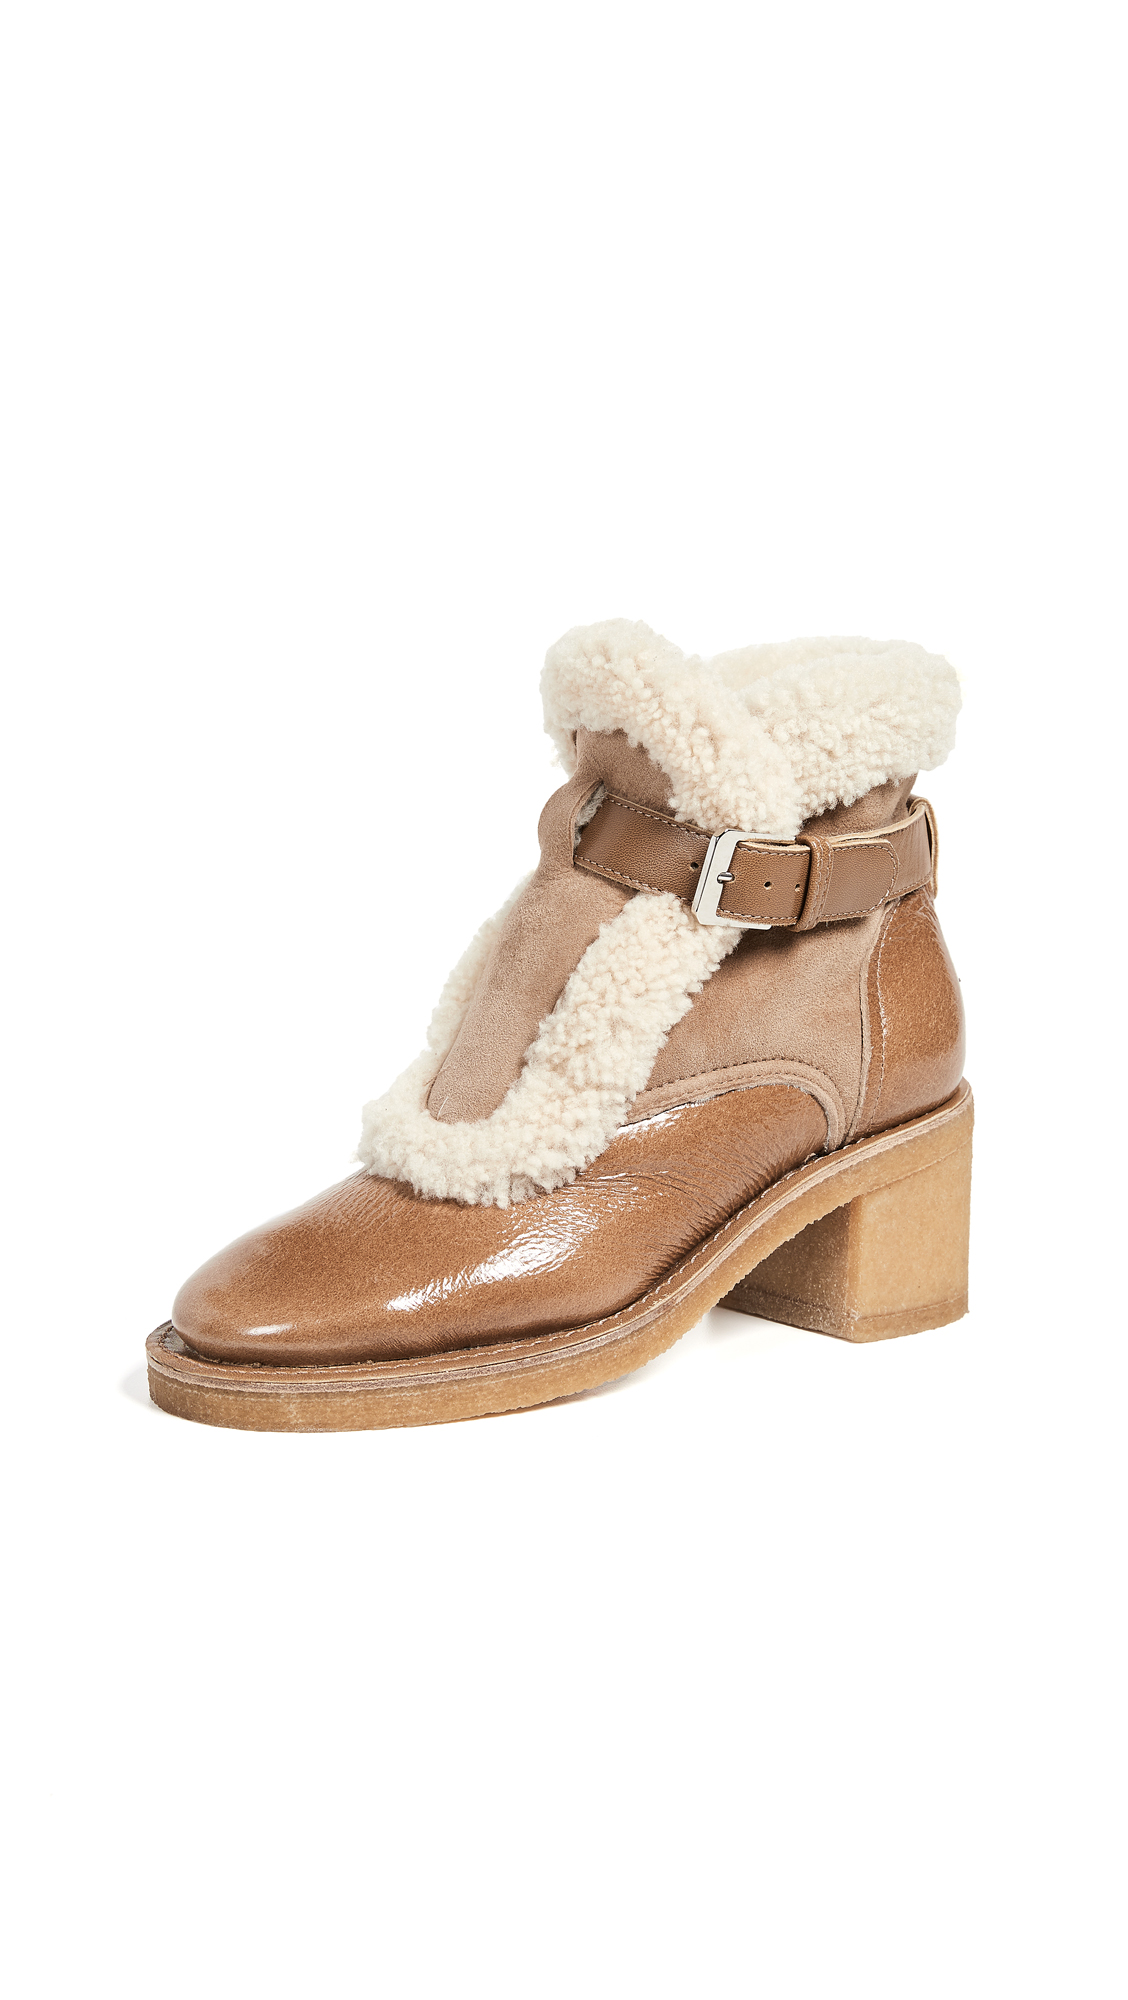 LAURENCE DACADE Snow Shearling-Trimmed Glossed-Leather And Suede Ankle Boots in Beige